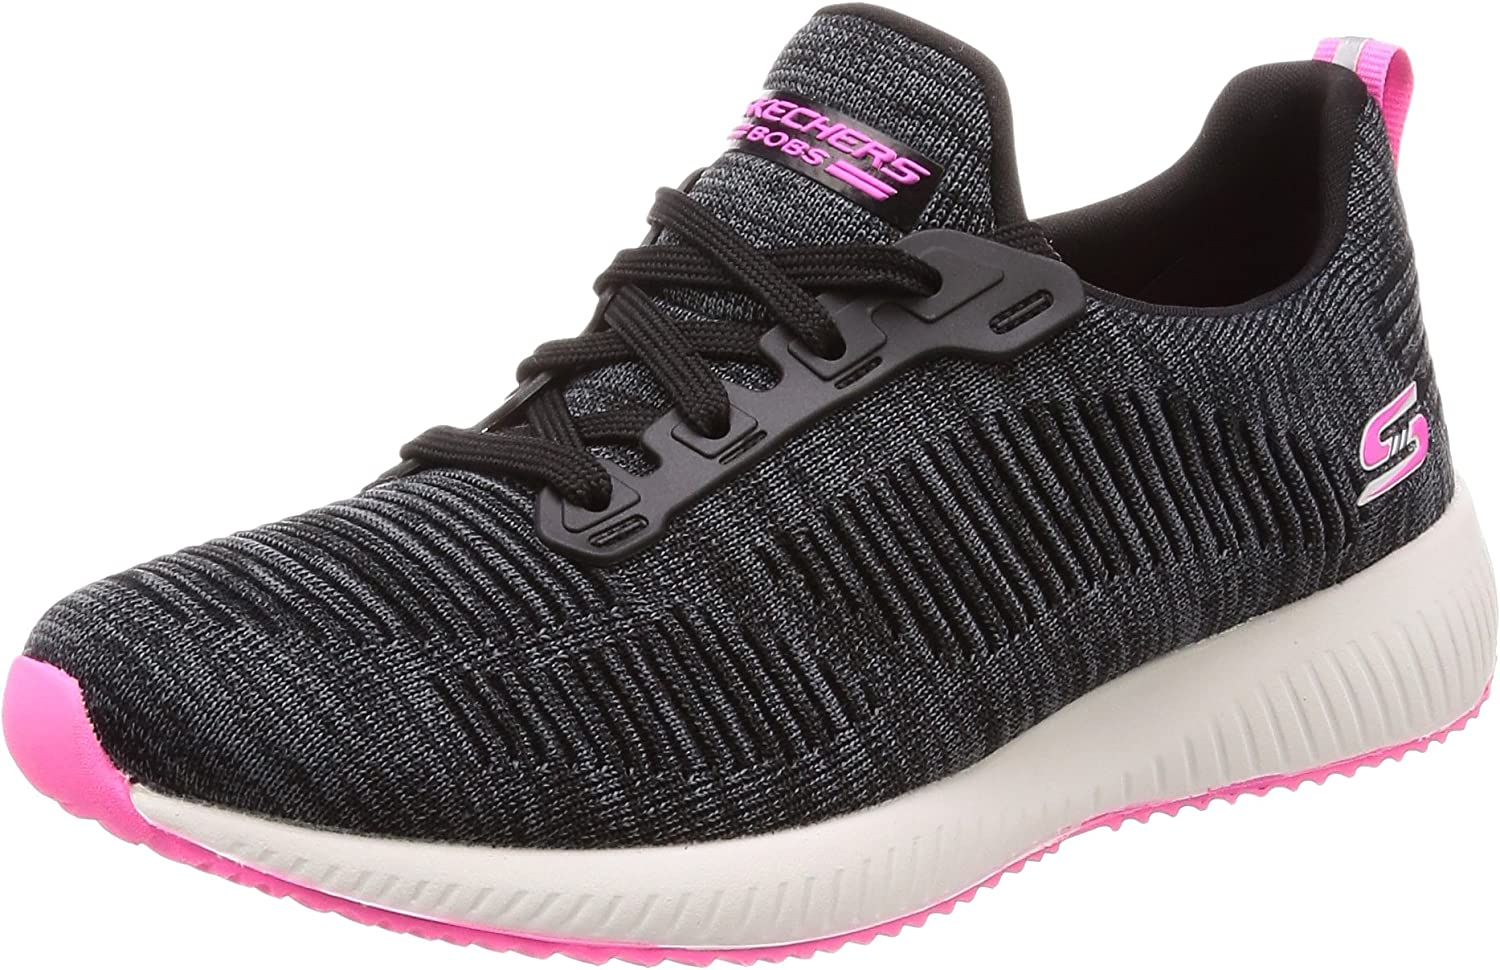 Skechers Womens Bobs Squad - Glossy Finish Fashion Sneaker